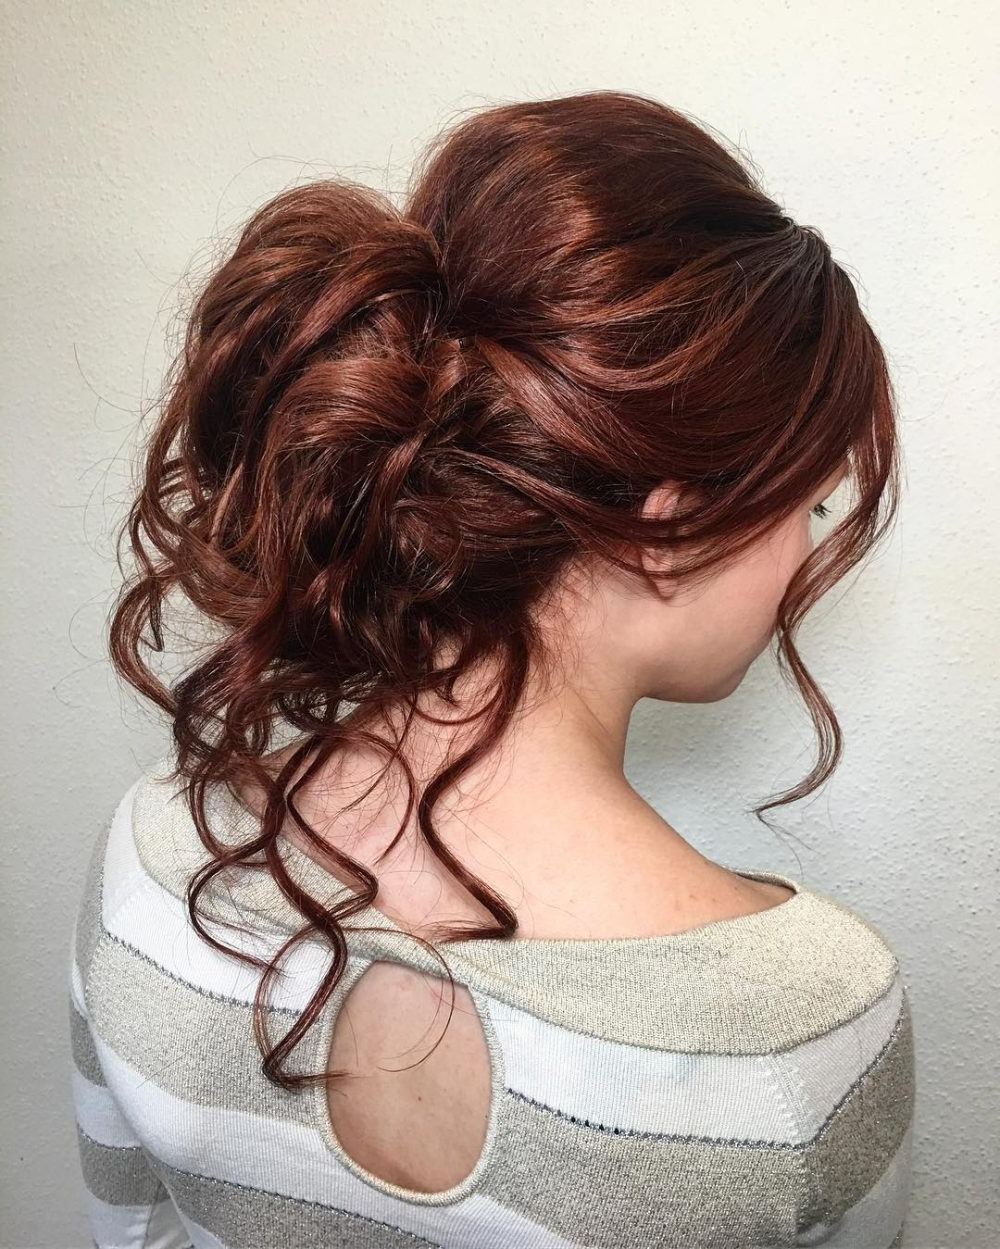 15 Gorgeous Wedding Updos For Brides In 2019 Regarding Famous Blonde And Bubbly Hairstyles For Wedding (View 2 of 20)